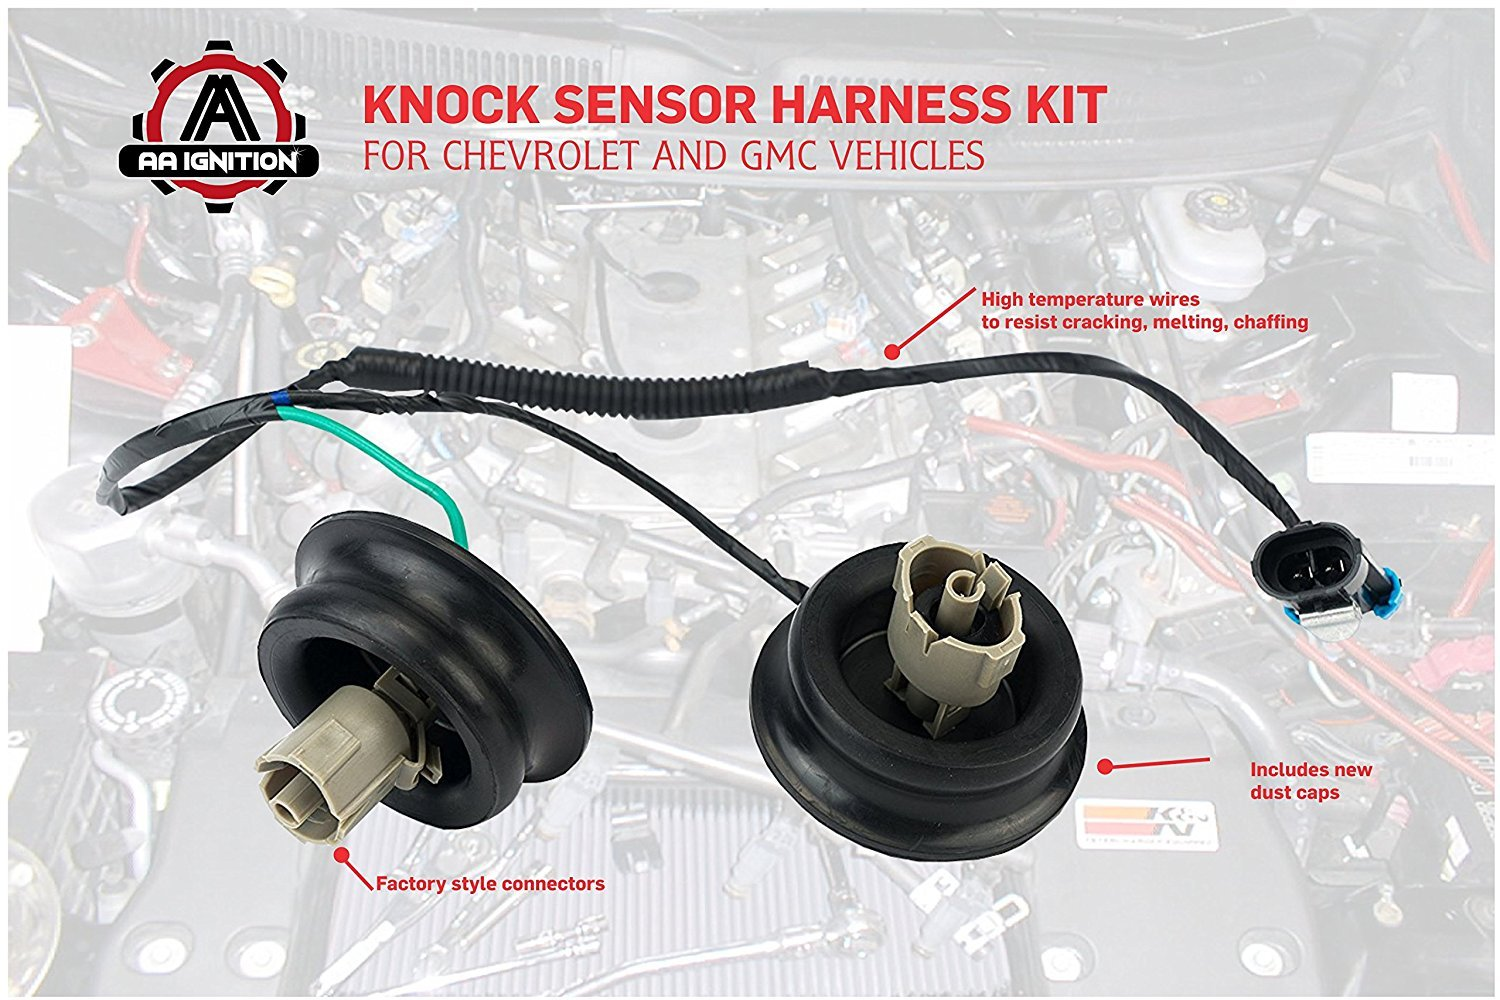 Knock Sensor Wire Harness Kit Replaces 12601822 917 033 1999 Silverado Wiring Routing Fits Chevy Suburban Chevrolet Avalanche Tahoe Gmc Sierra Yukon